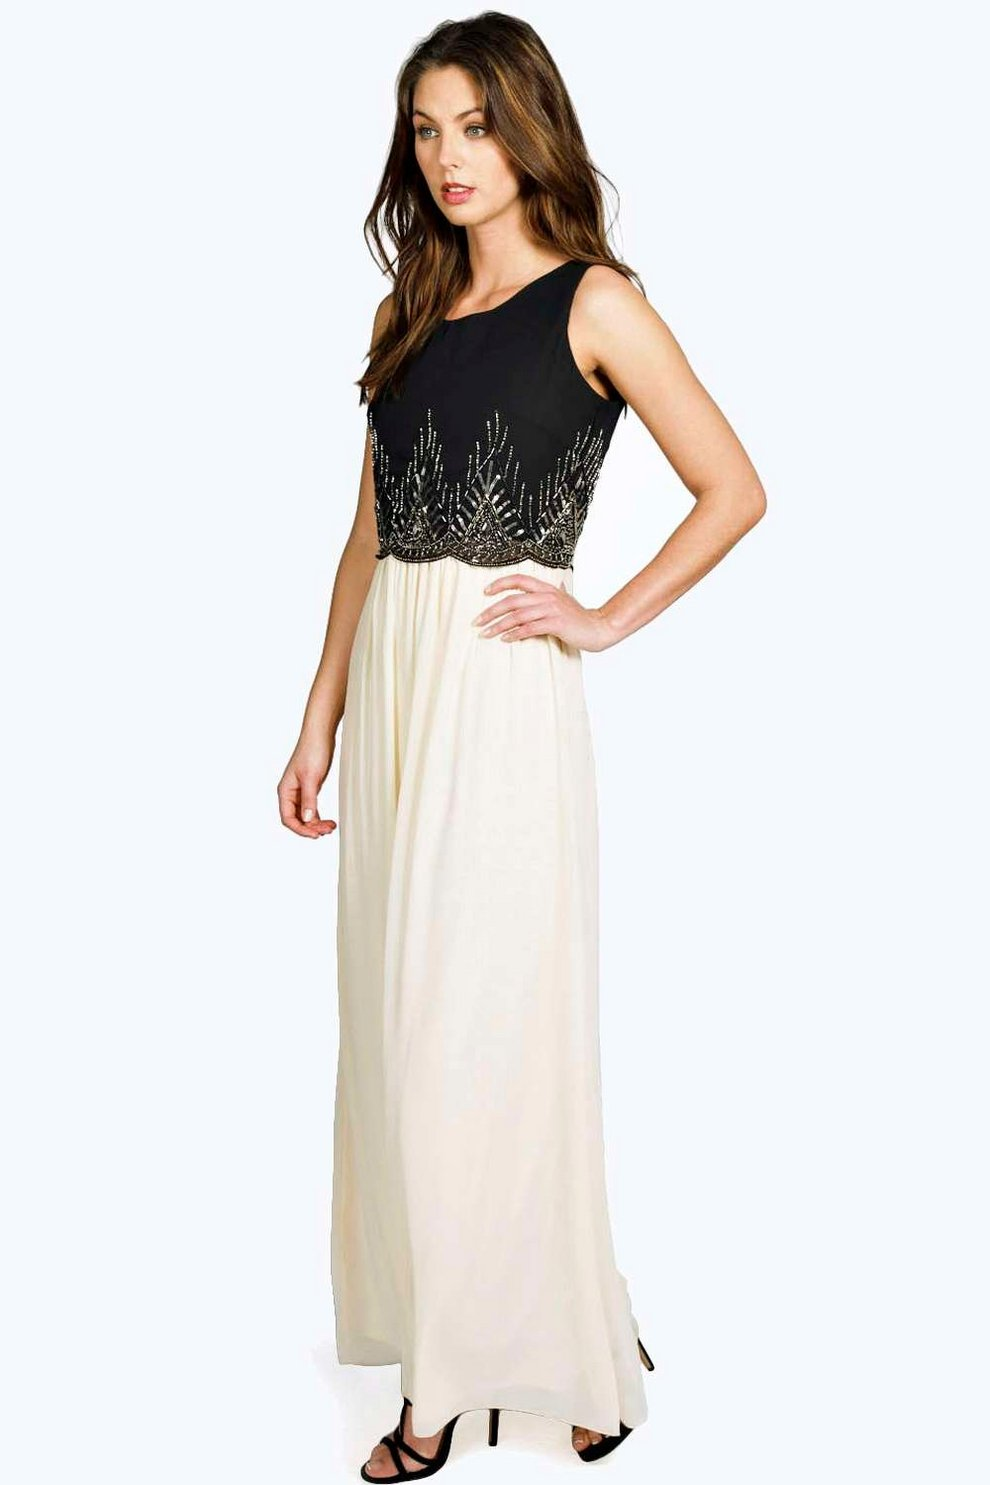 Boohoo Boutique Embellished Chiffon Maxi Dress Cheap Sale Fashionable Free Shipping Great Deals With Mastercard For Sale R65BY9